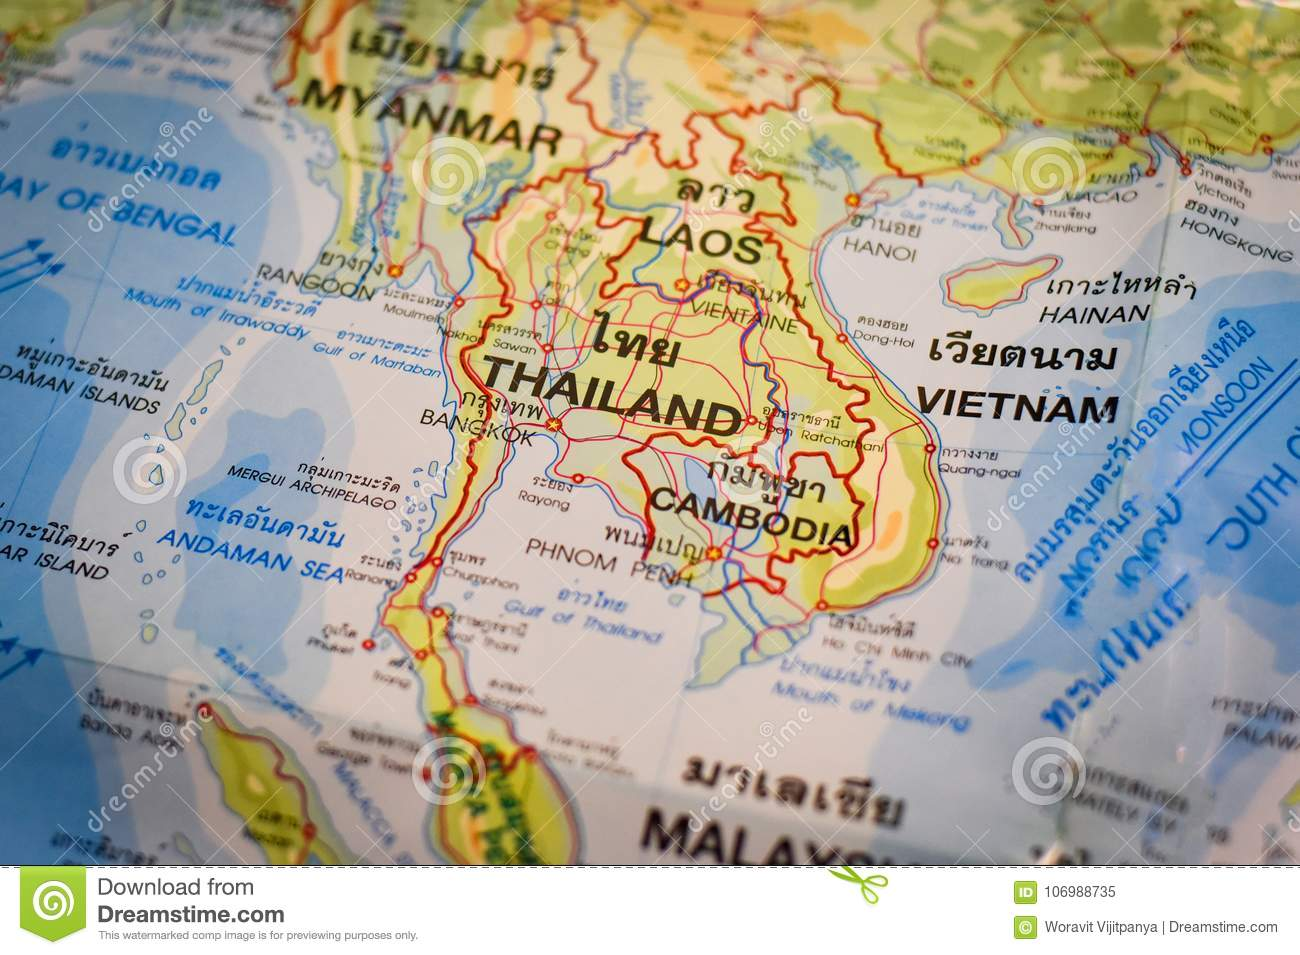 Thai map and asia map stock image image of background 106988735 thailand map global map may use as background gumiabroncs Choice Image